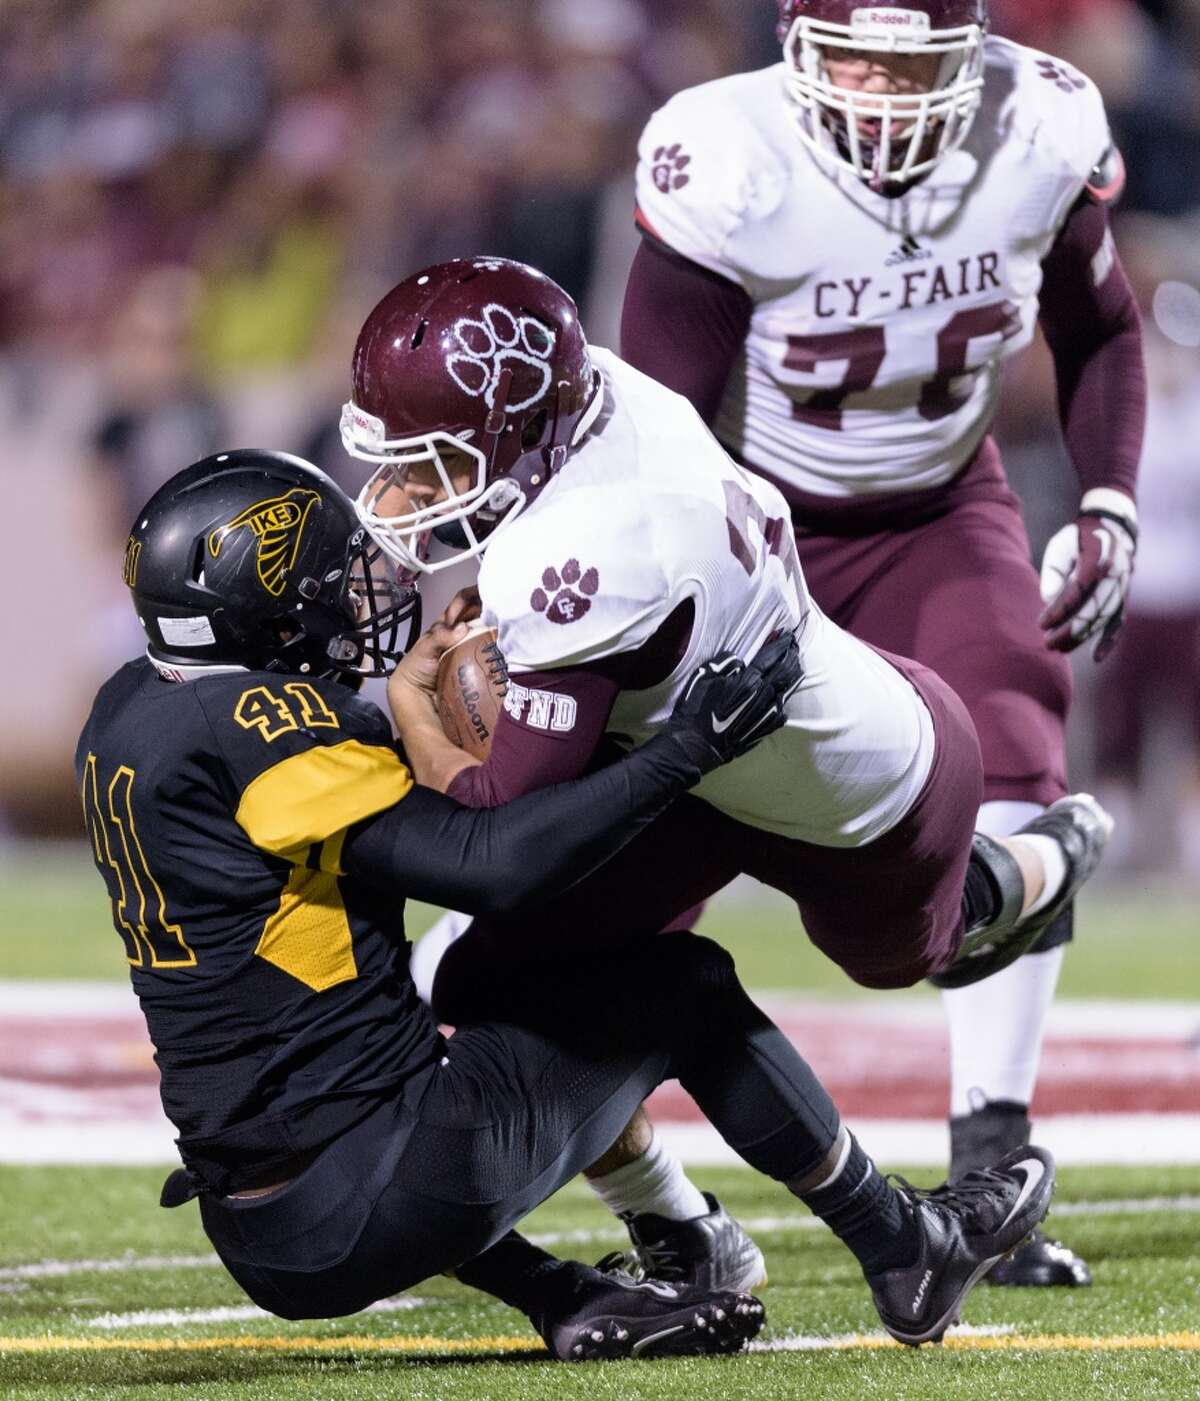 Blake Faecher (32) of the Cy-Fair Bobcats is brought down by Earnest Anderson (41) of the Eisenhower Eagles after a short gain in the first half of a high school football game on Saturday, November 14, 2015 at Thorne Stadium.